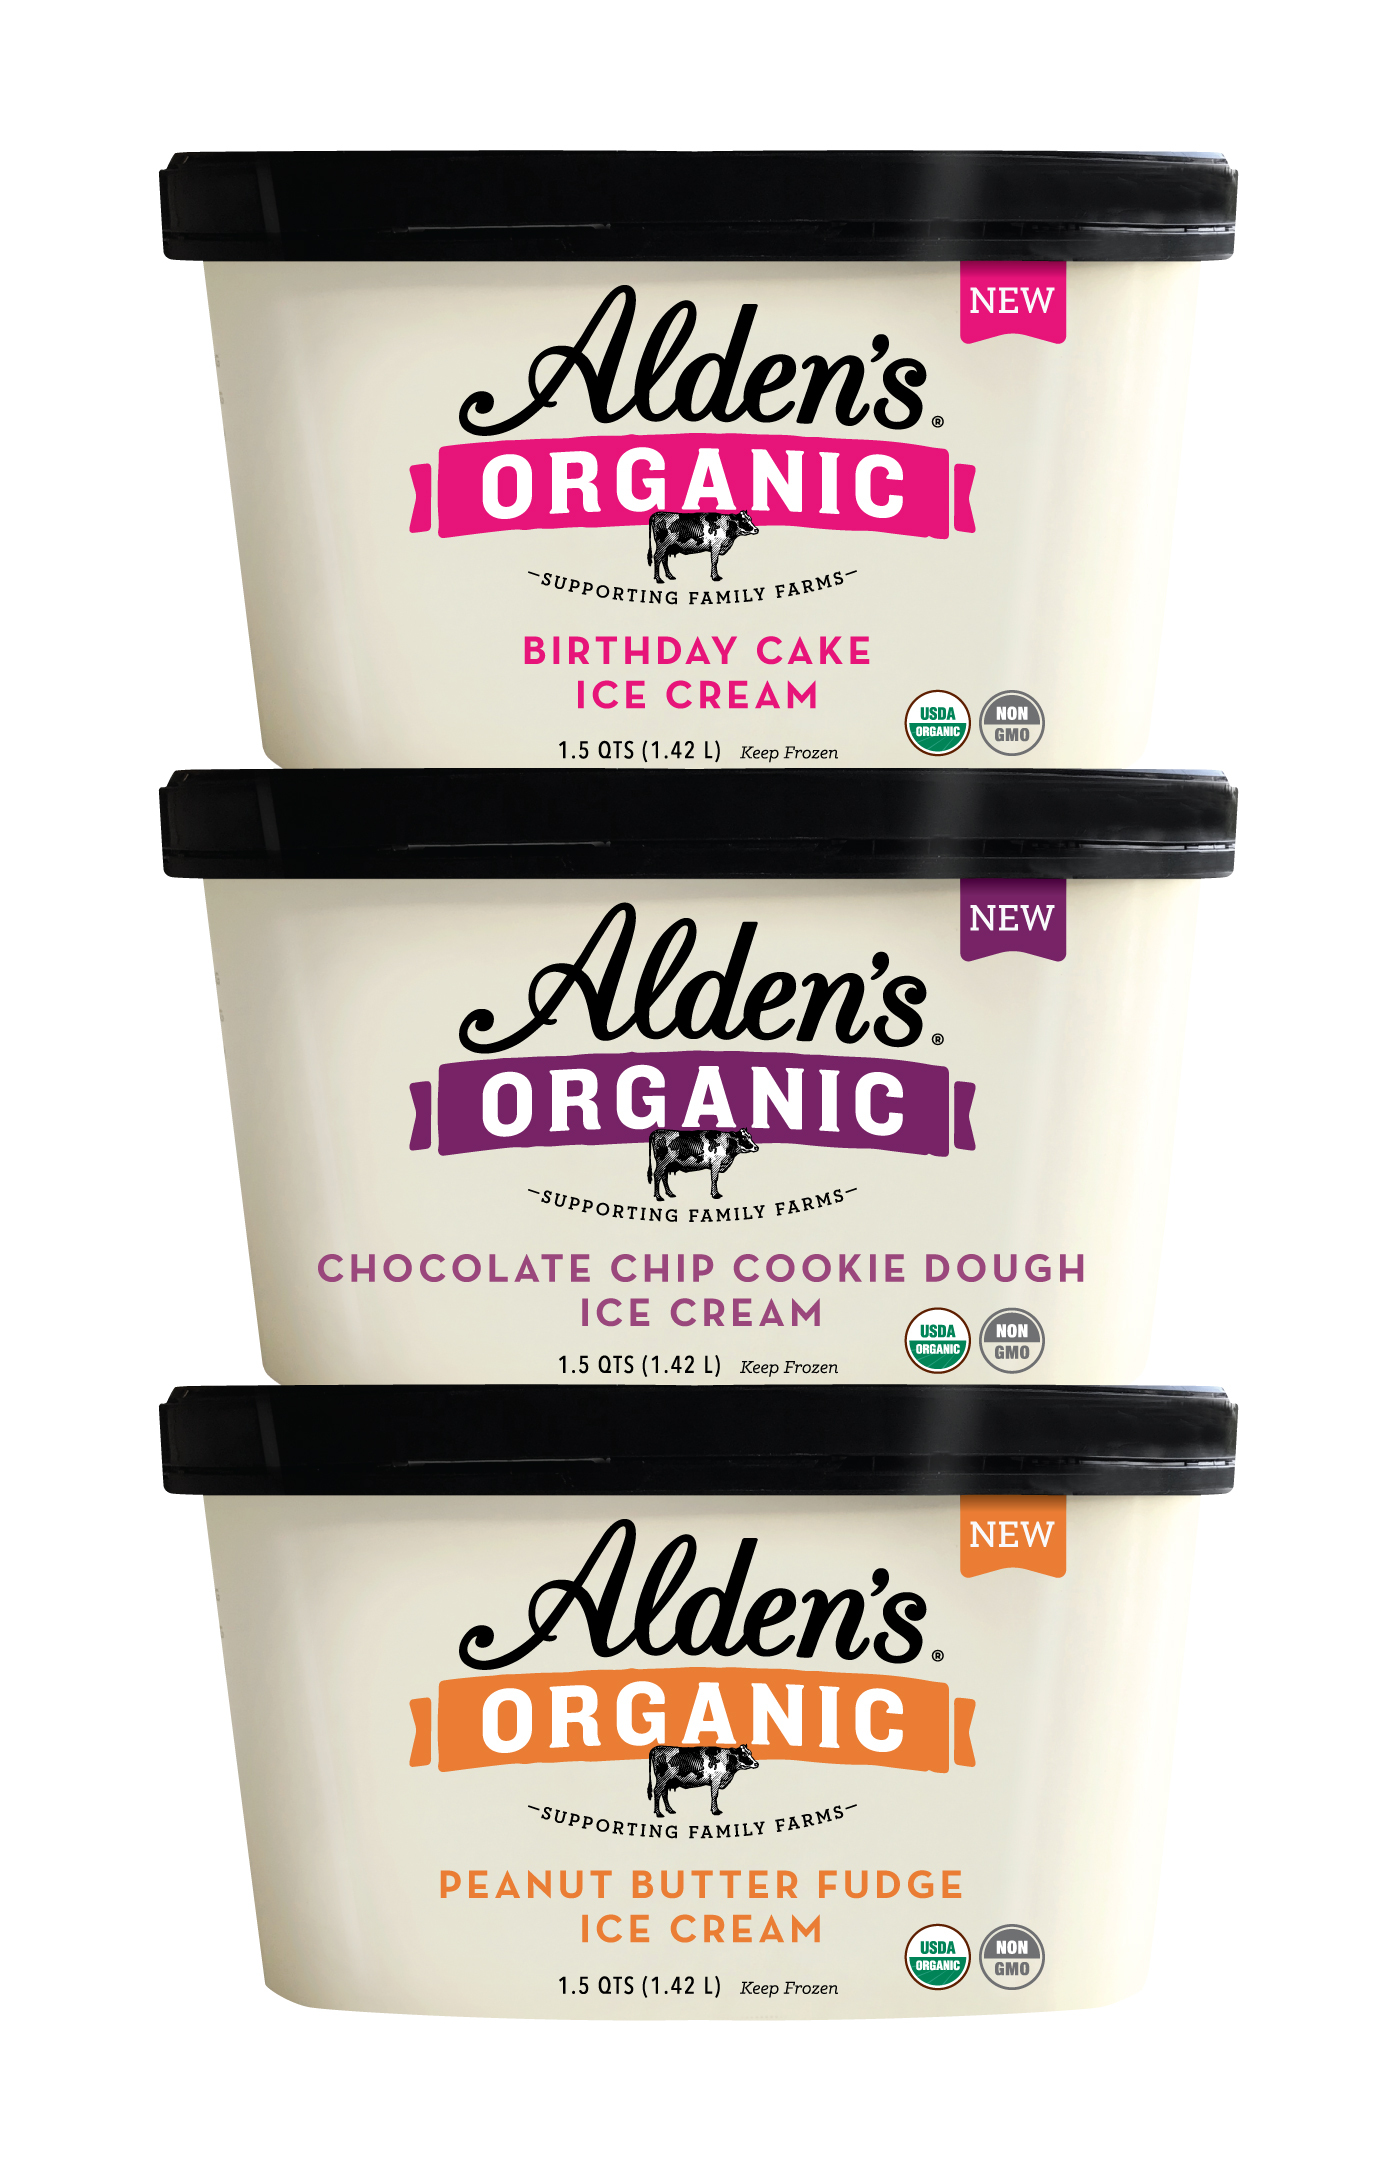 Candy Cake And Cookies Inspire New Flavors From Aldens Organic Ice Cream